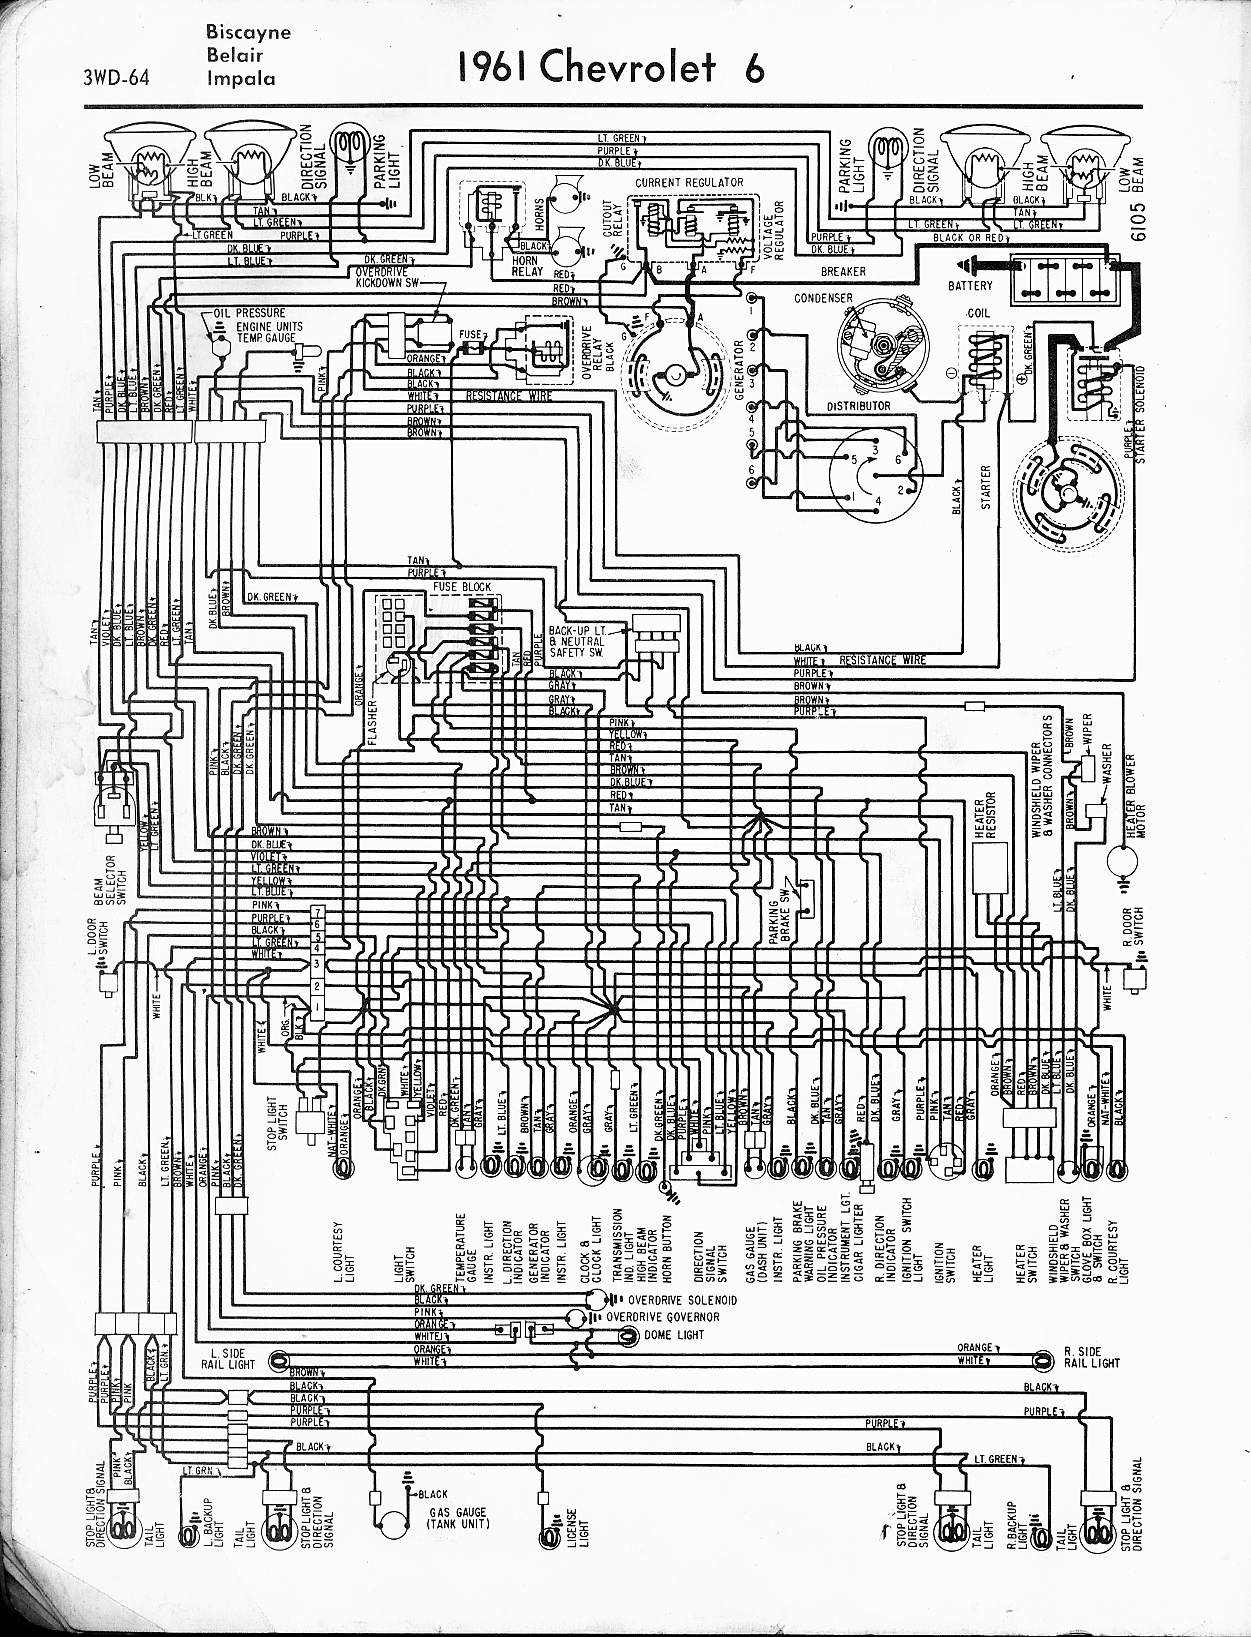 Peachy 65 Chevy C10 Wiring Diagram Wiring Library Wiring Digital Resources Indicompassionincorg